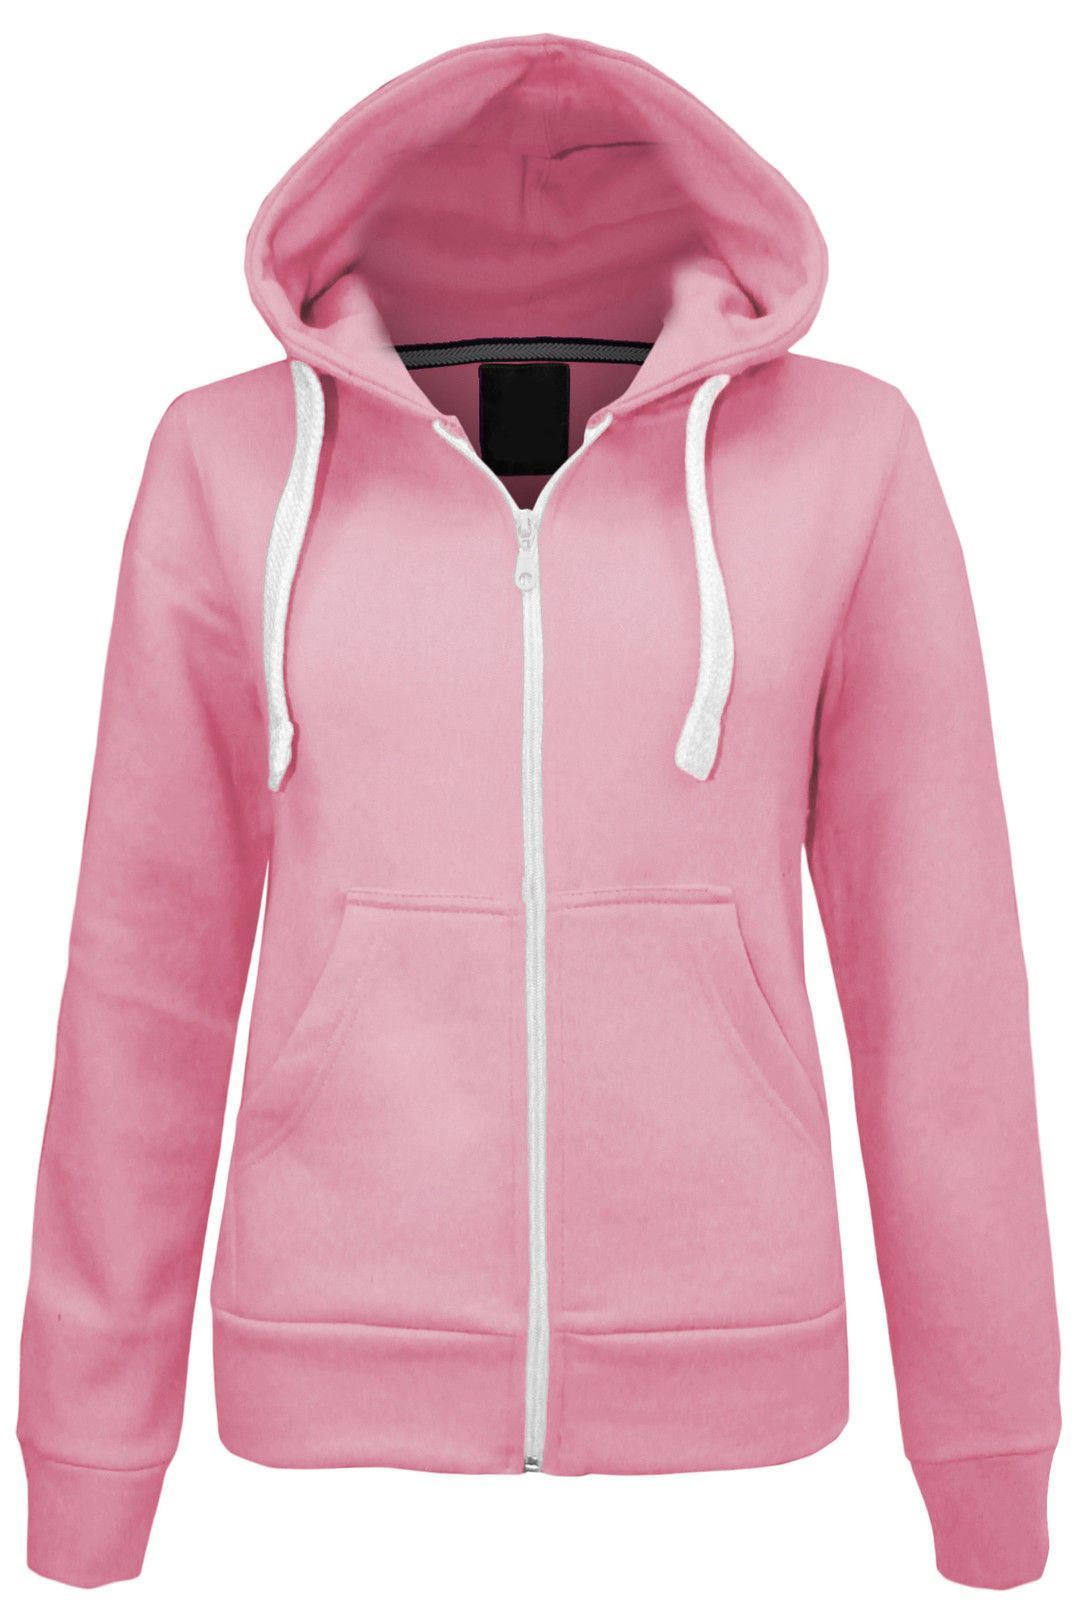 Infant Baby Boy Girls Hooded Sweatshirt Long Sleeve Plain Pullover Top Blouse $ 7 Urkutoba. Unisex Baby Autumn Winter Hooded T-Shirt Infant Boys Girls Cotton Hoodies with Kangaroo Muff Pockets. from $ 4 98 Prime. out of 5 stars The North Face. Baby Boys' Hoodies .